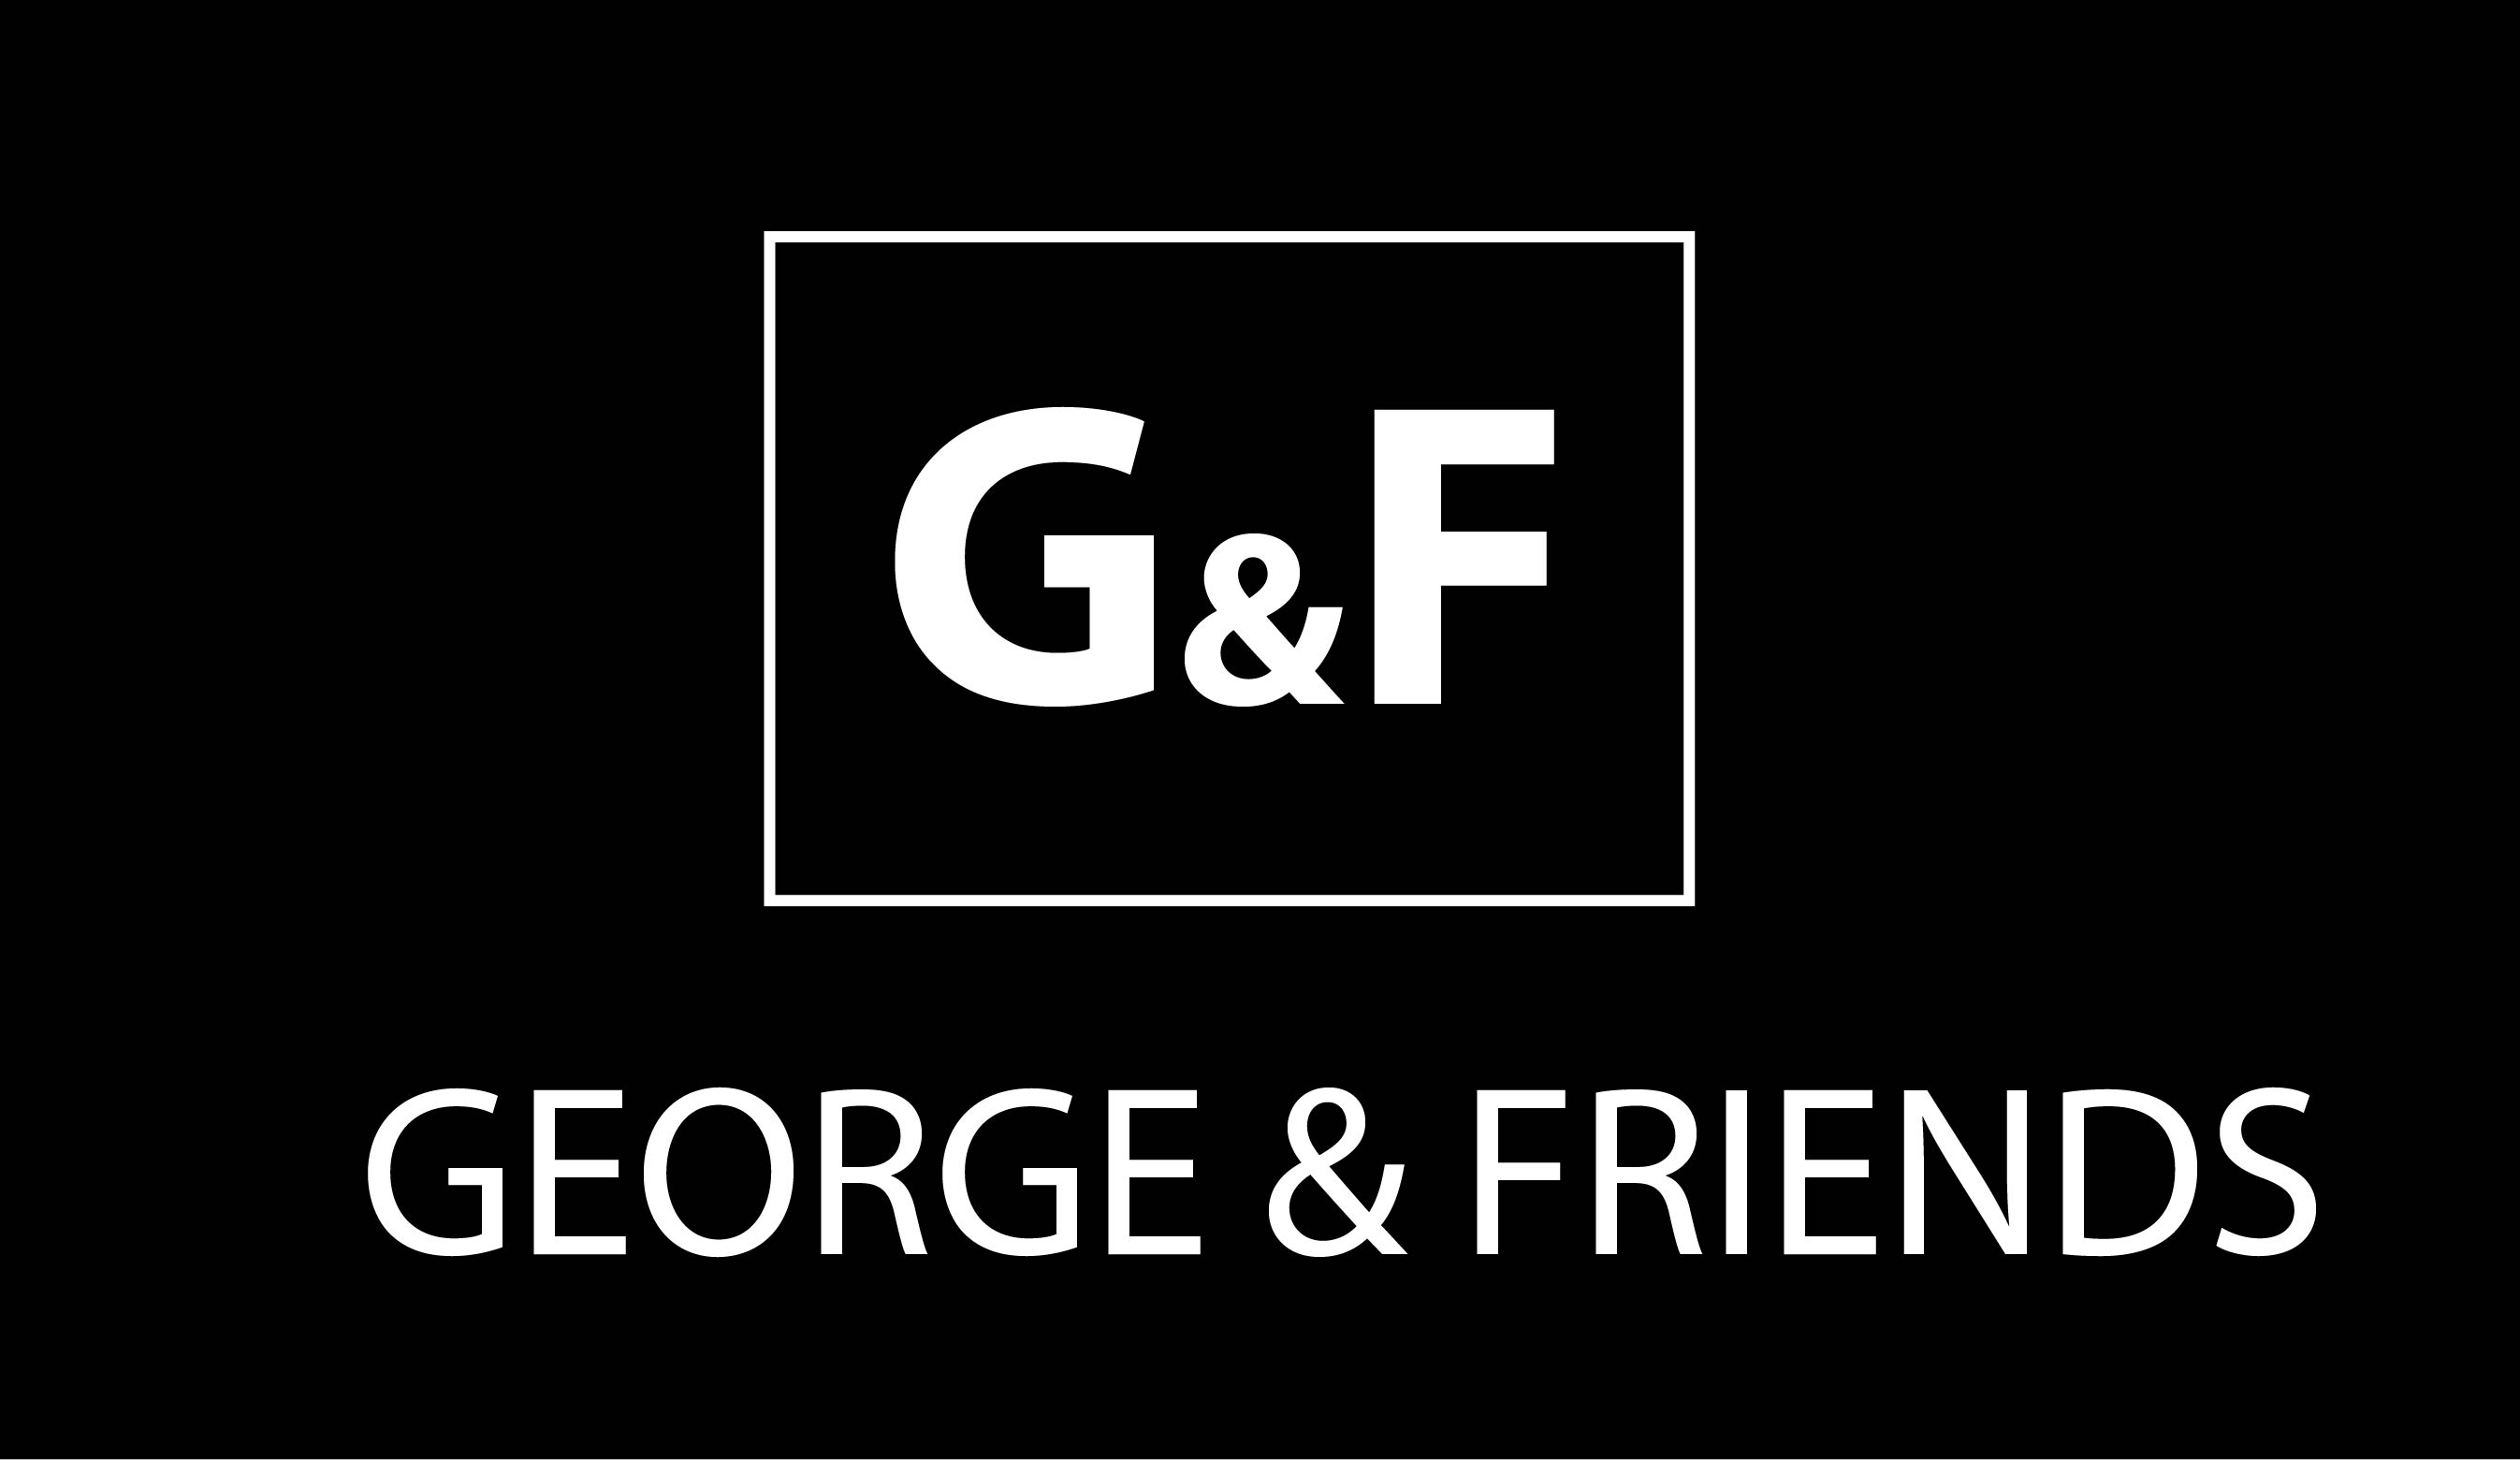 George and friends logo